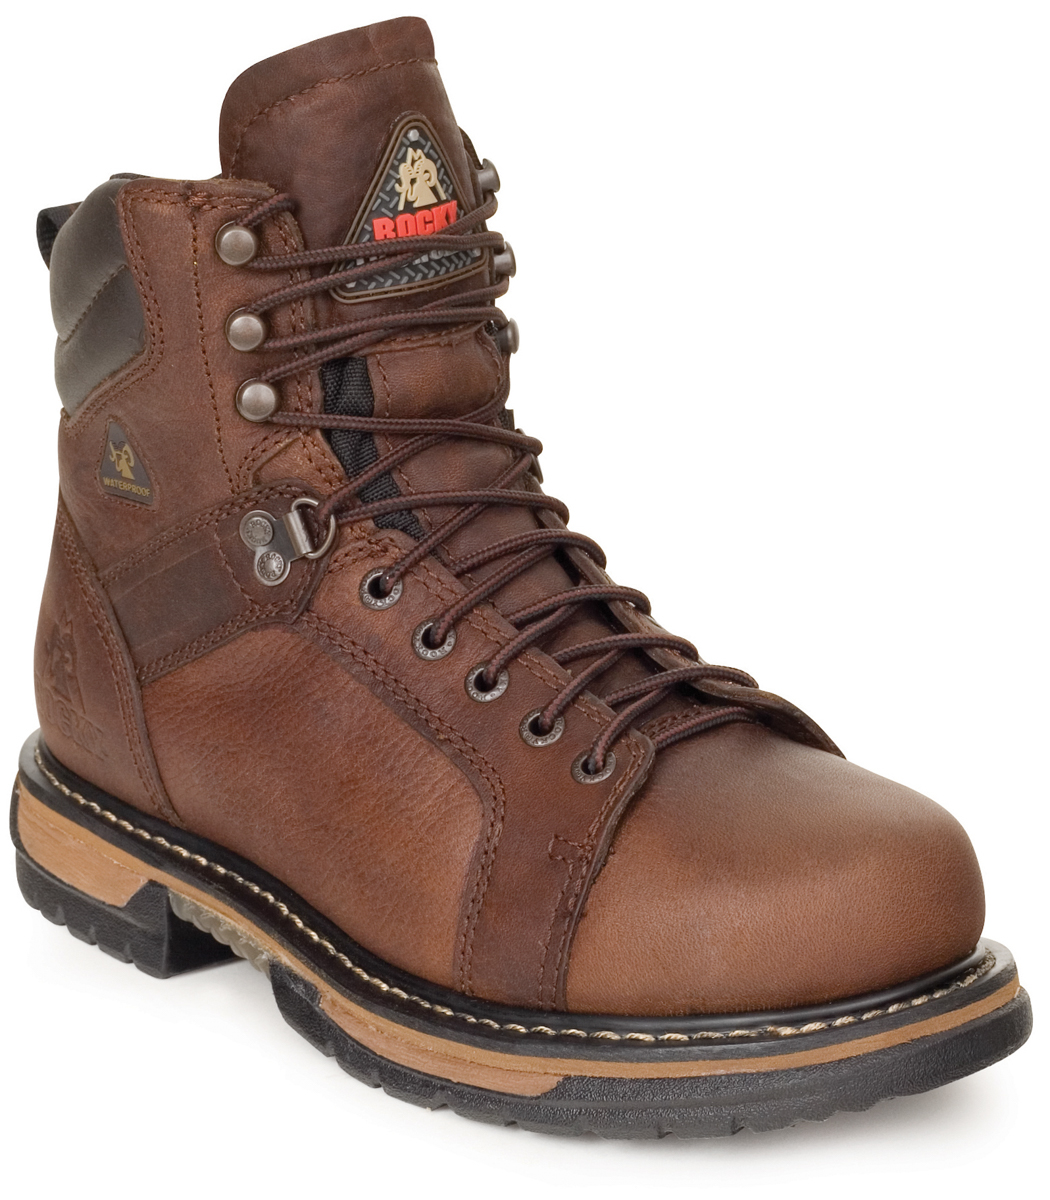 dde0dabb524 Details about Rocky Mens Brown Leather Ironclad Waterproof Lace-to-Toe Work  Boots